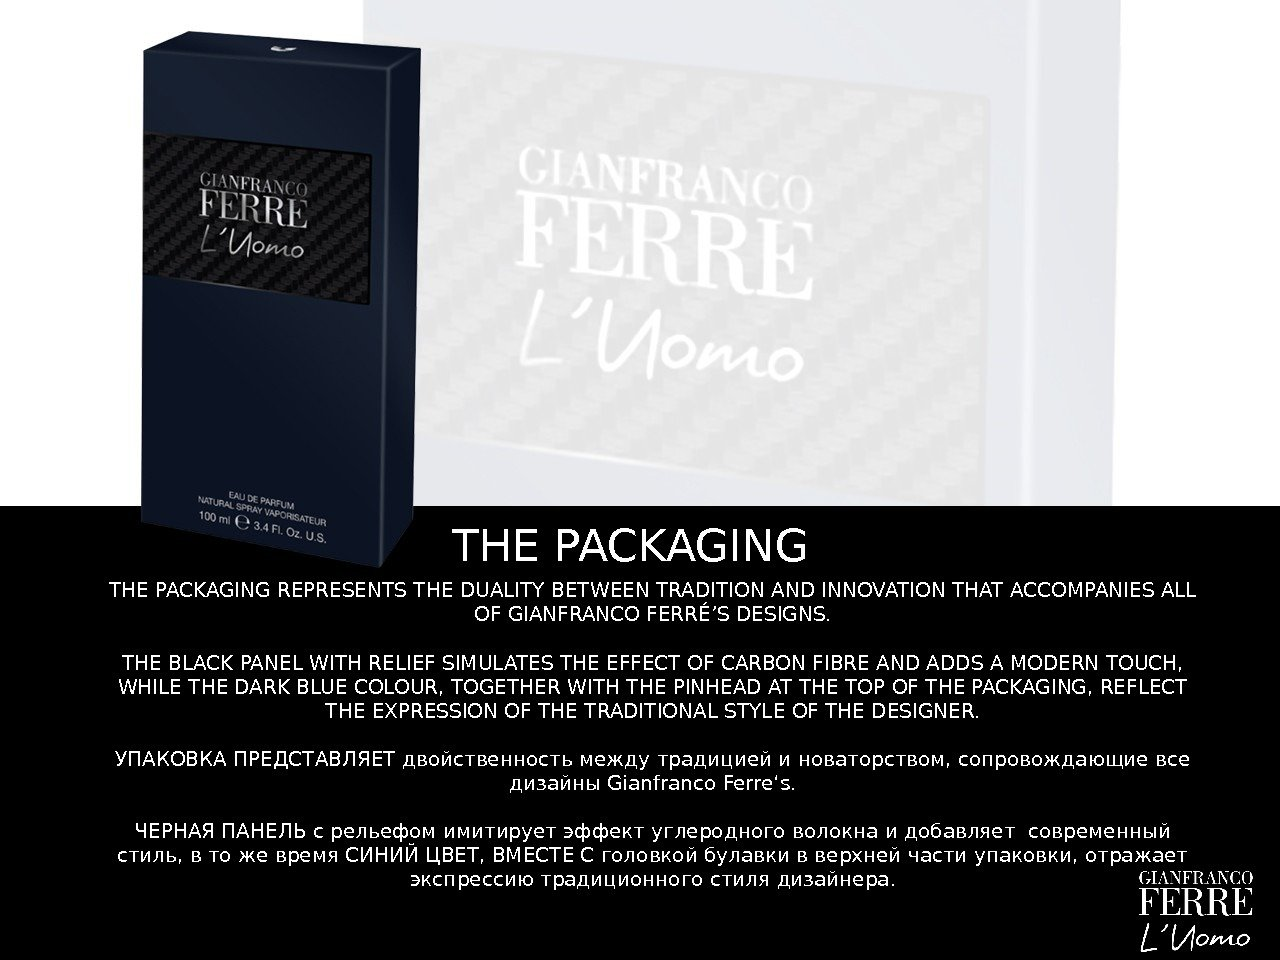 THE PACKAGING REPRESENTS THE DUALITY BETWEEN TRADITION AND INNOVATION THAT ACCOMPANIES ALL OF GIANFRANCO